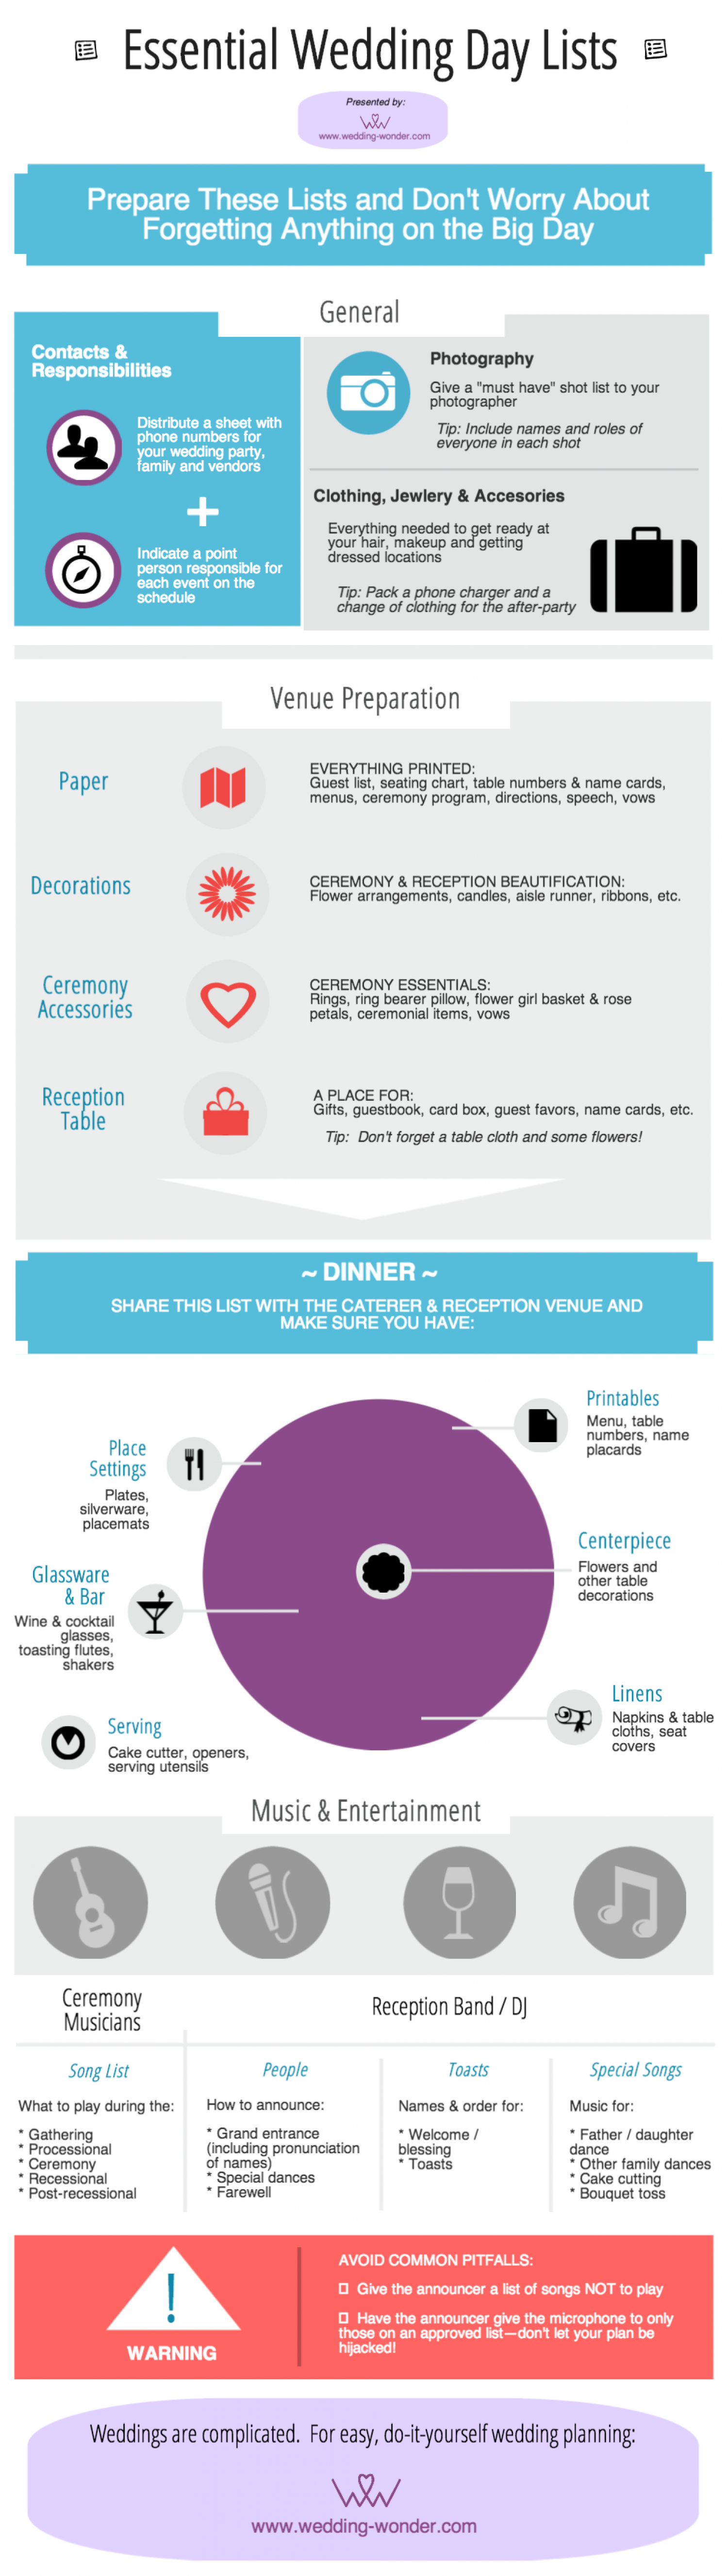 Essential Wedding Day Lists Infographic